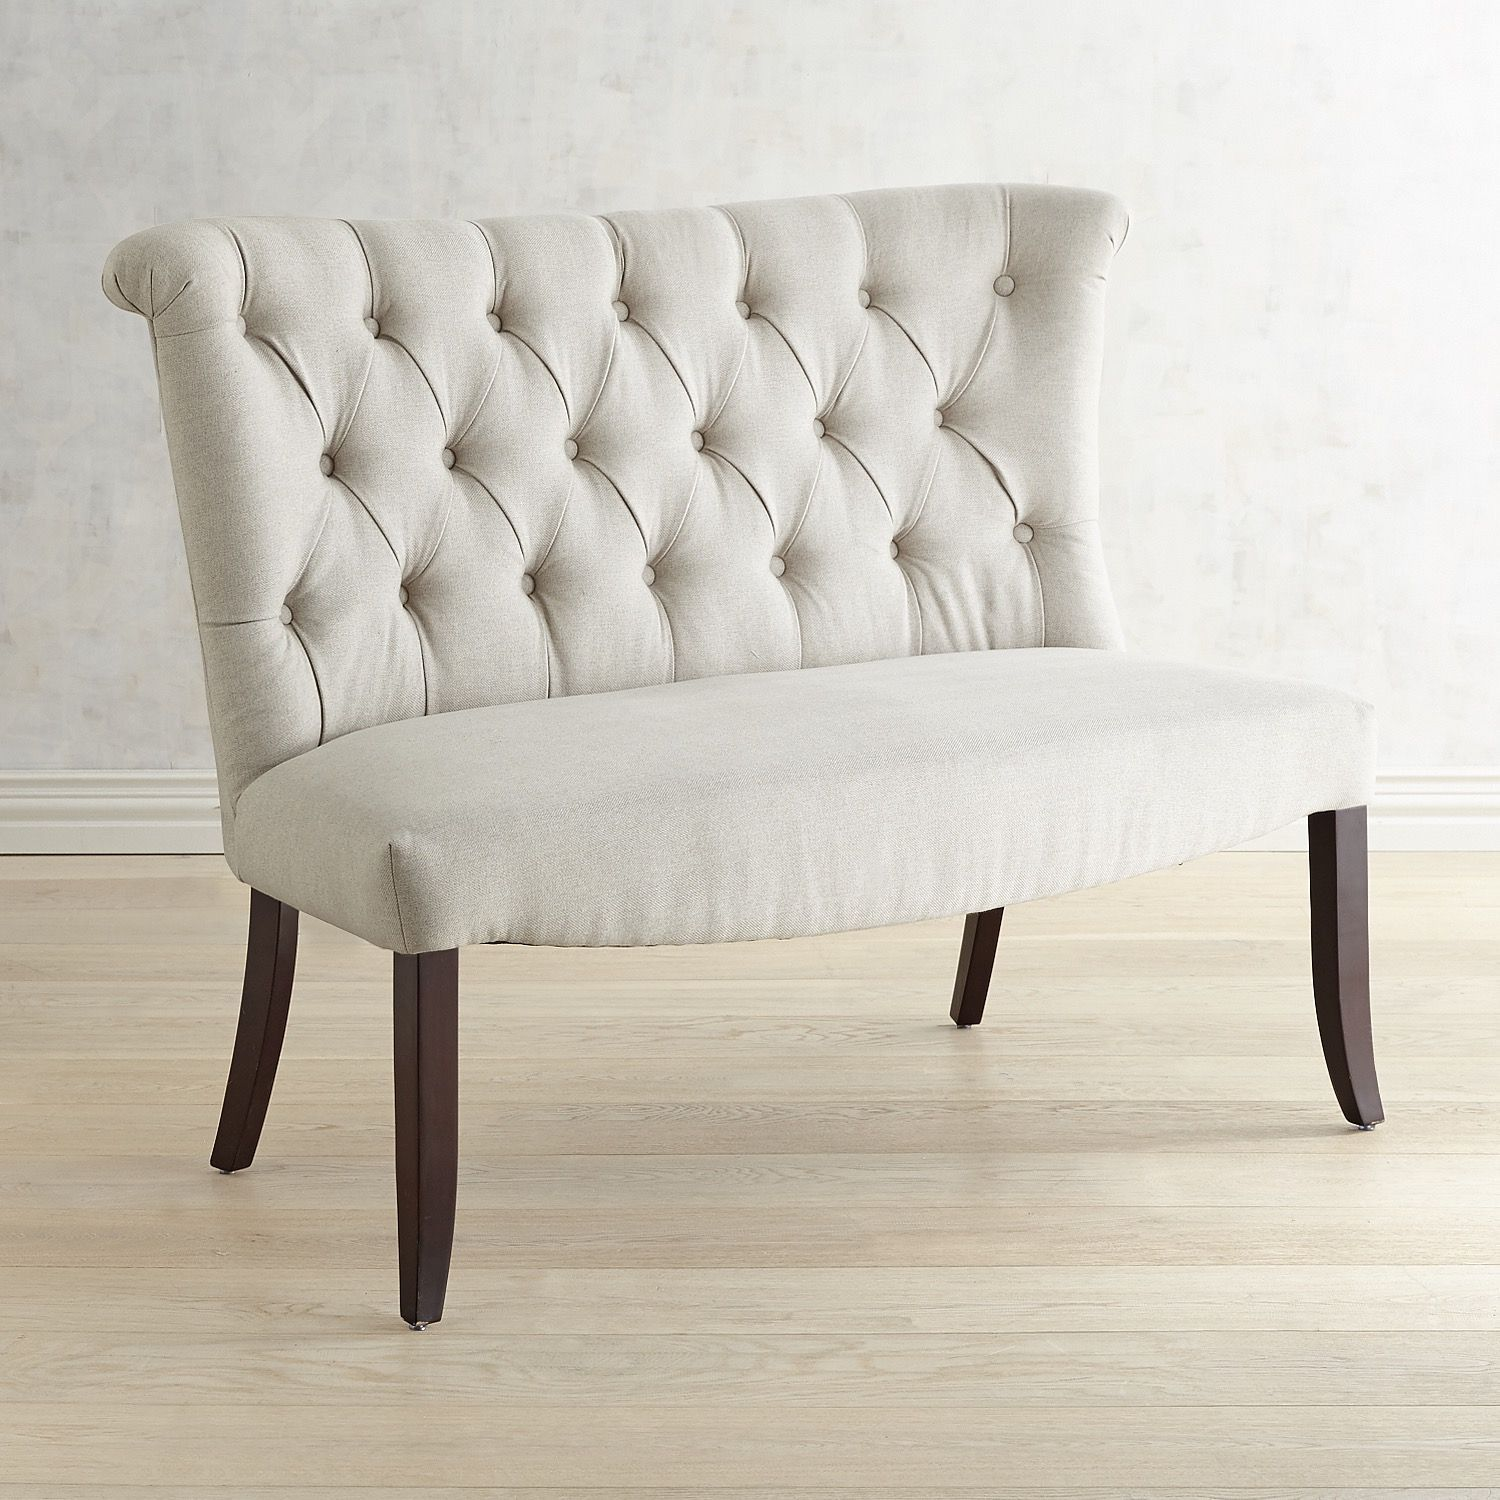 Surprising Colette Flax Banquette Dining Bench With Espresso Wood In Cjindustries Chair Design For Home Cjindustriesco